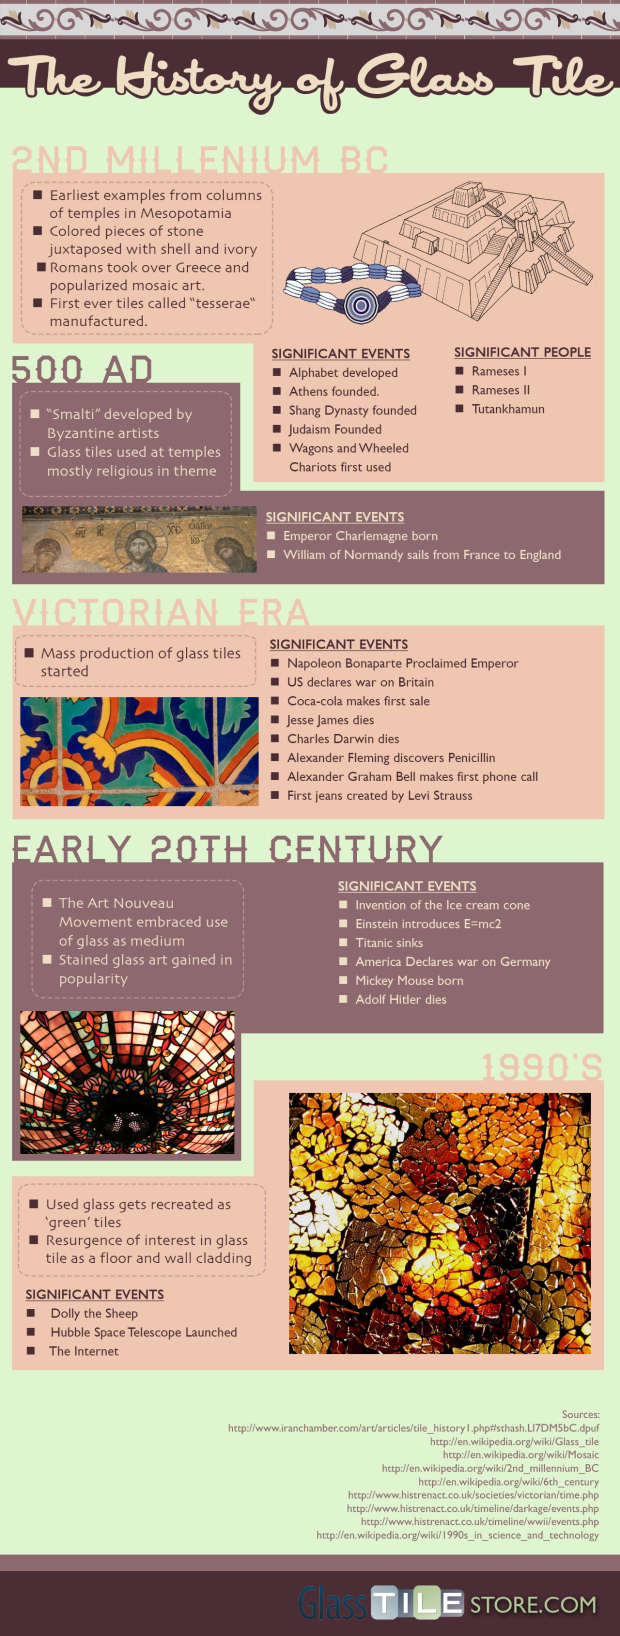 the-history-of-glass-tiles_5214dca83b2c1